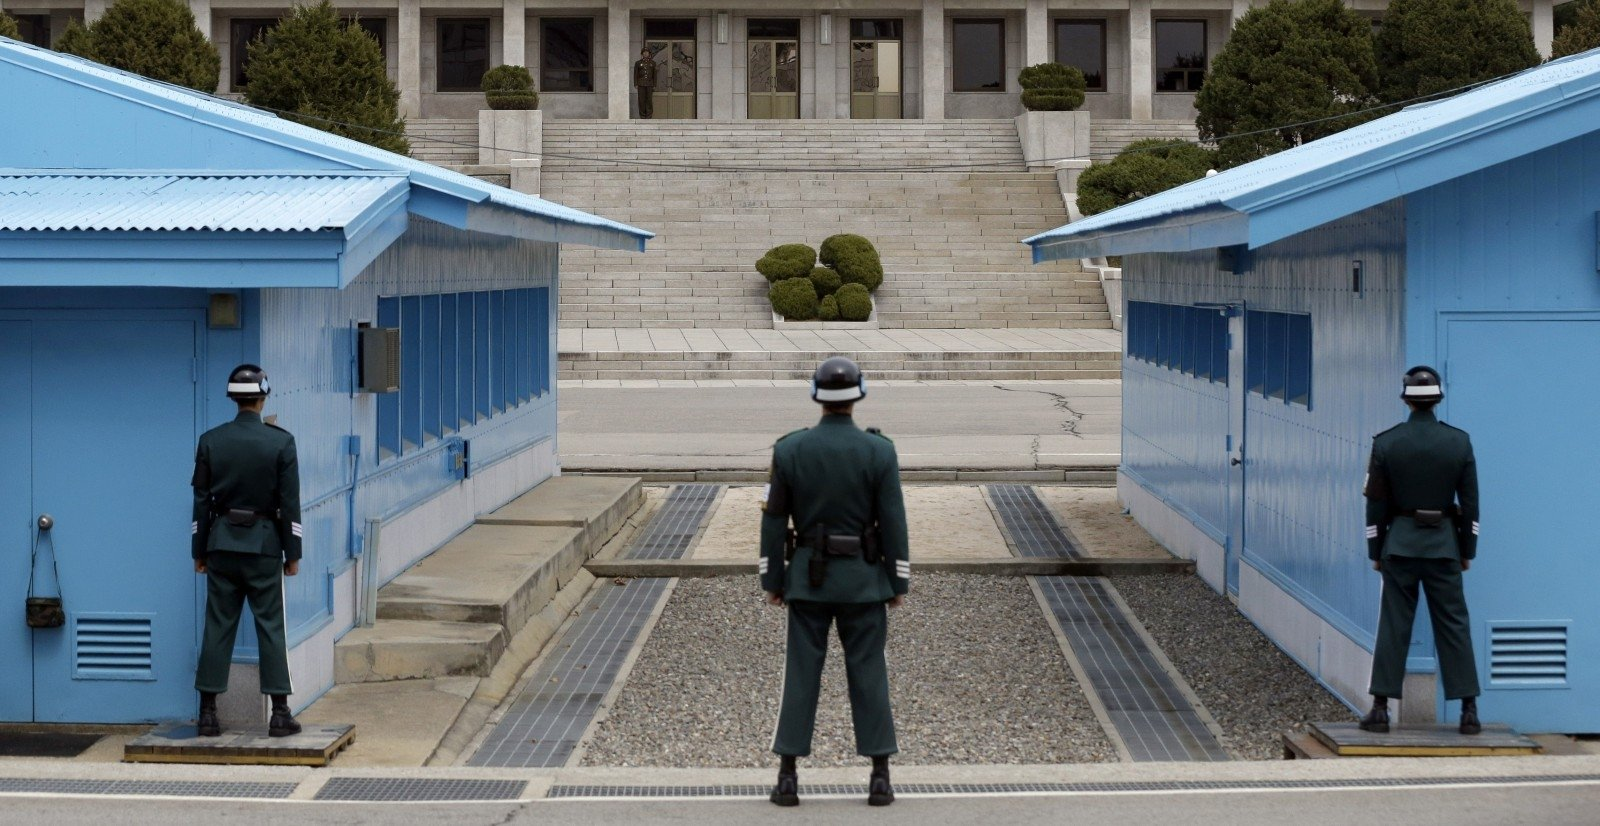 PHOTOS : The Demilitarized Zone on the border of North and South Pictures of north and south korea border